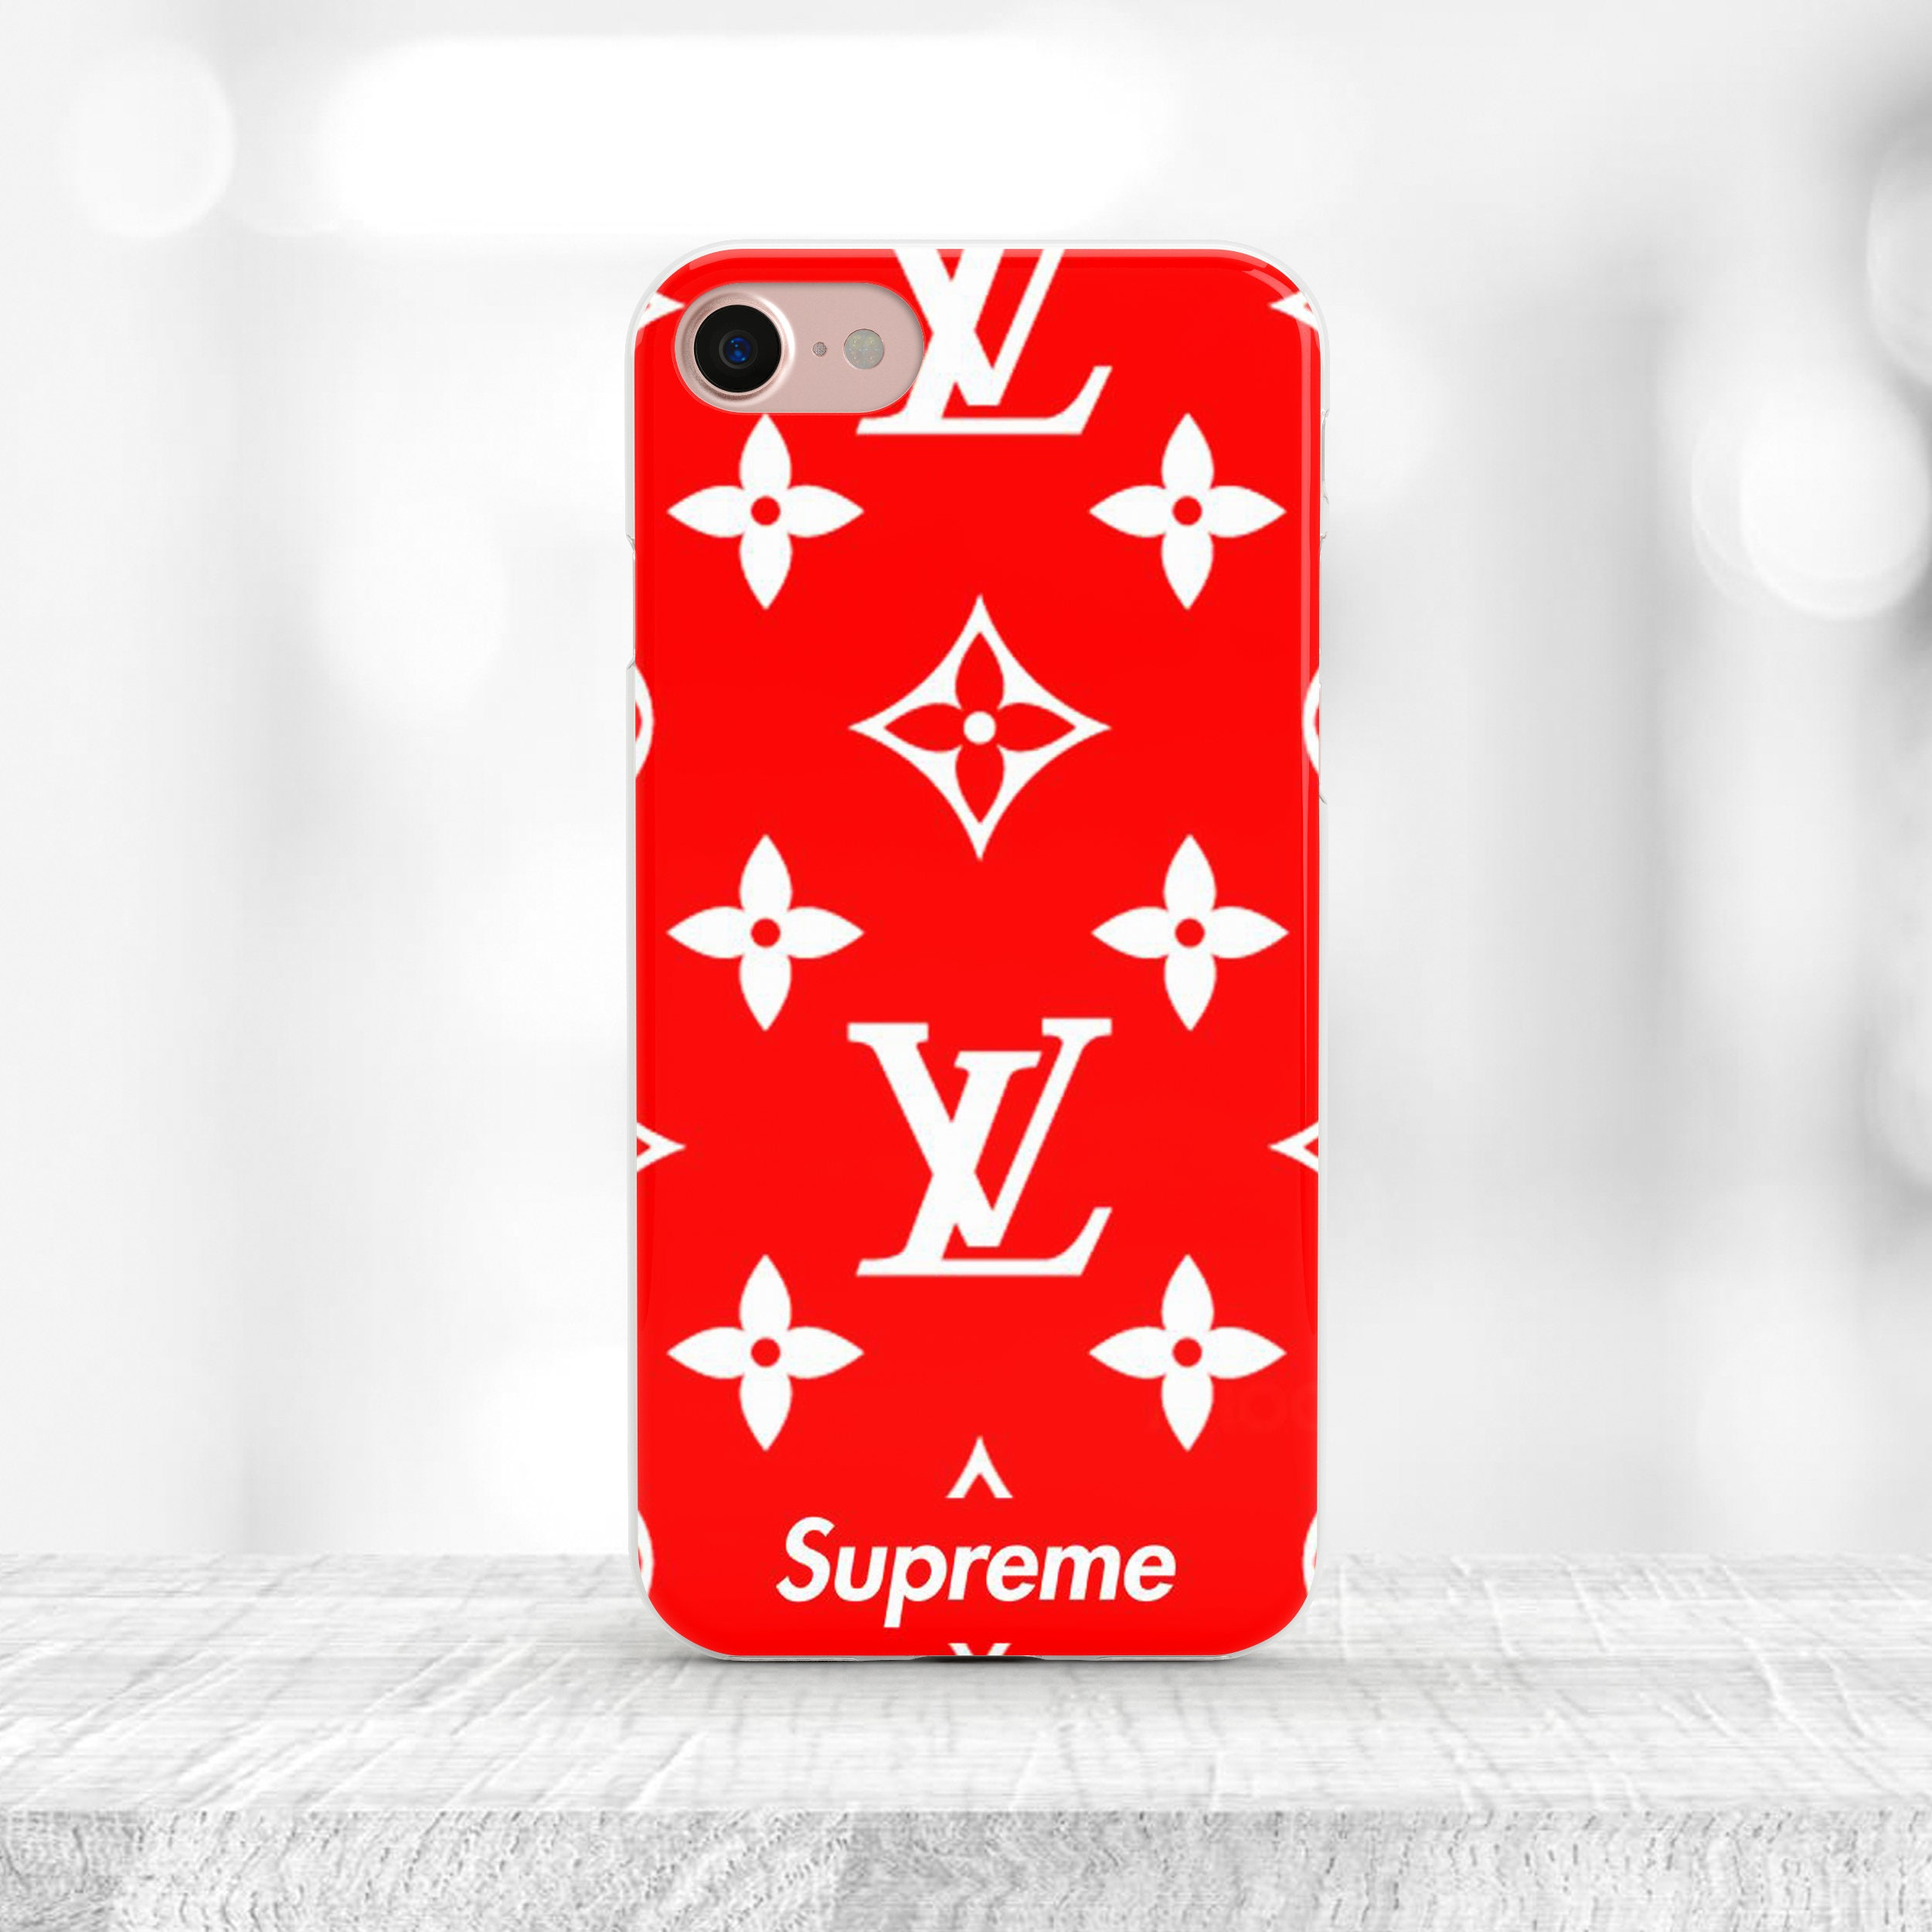 supreme iphone case red supreme louis vuitton iphone 7 plus. Black Bedroom Furniture Sets. Home Design Ideas